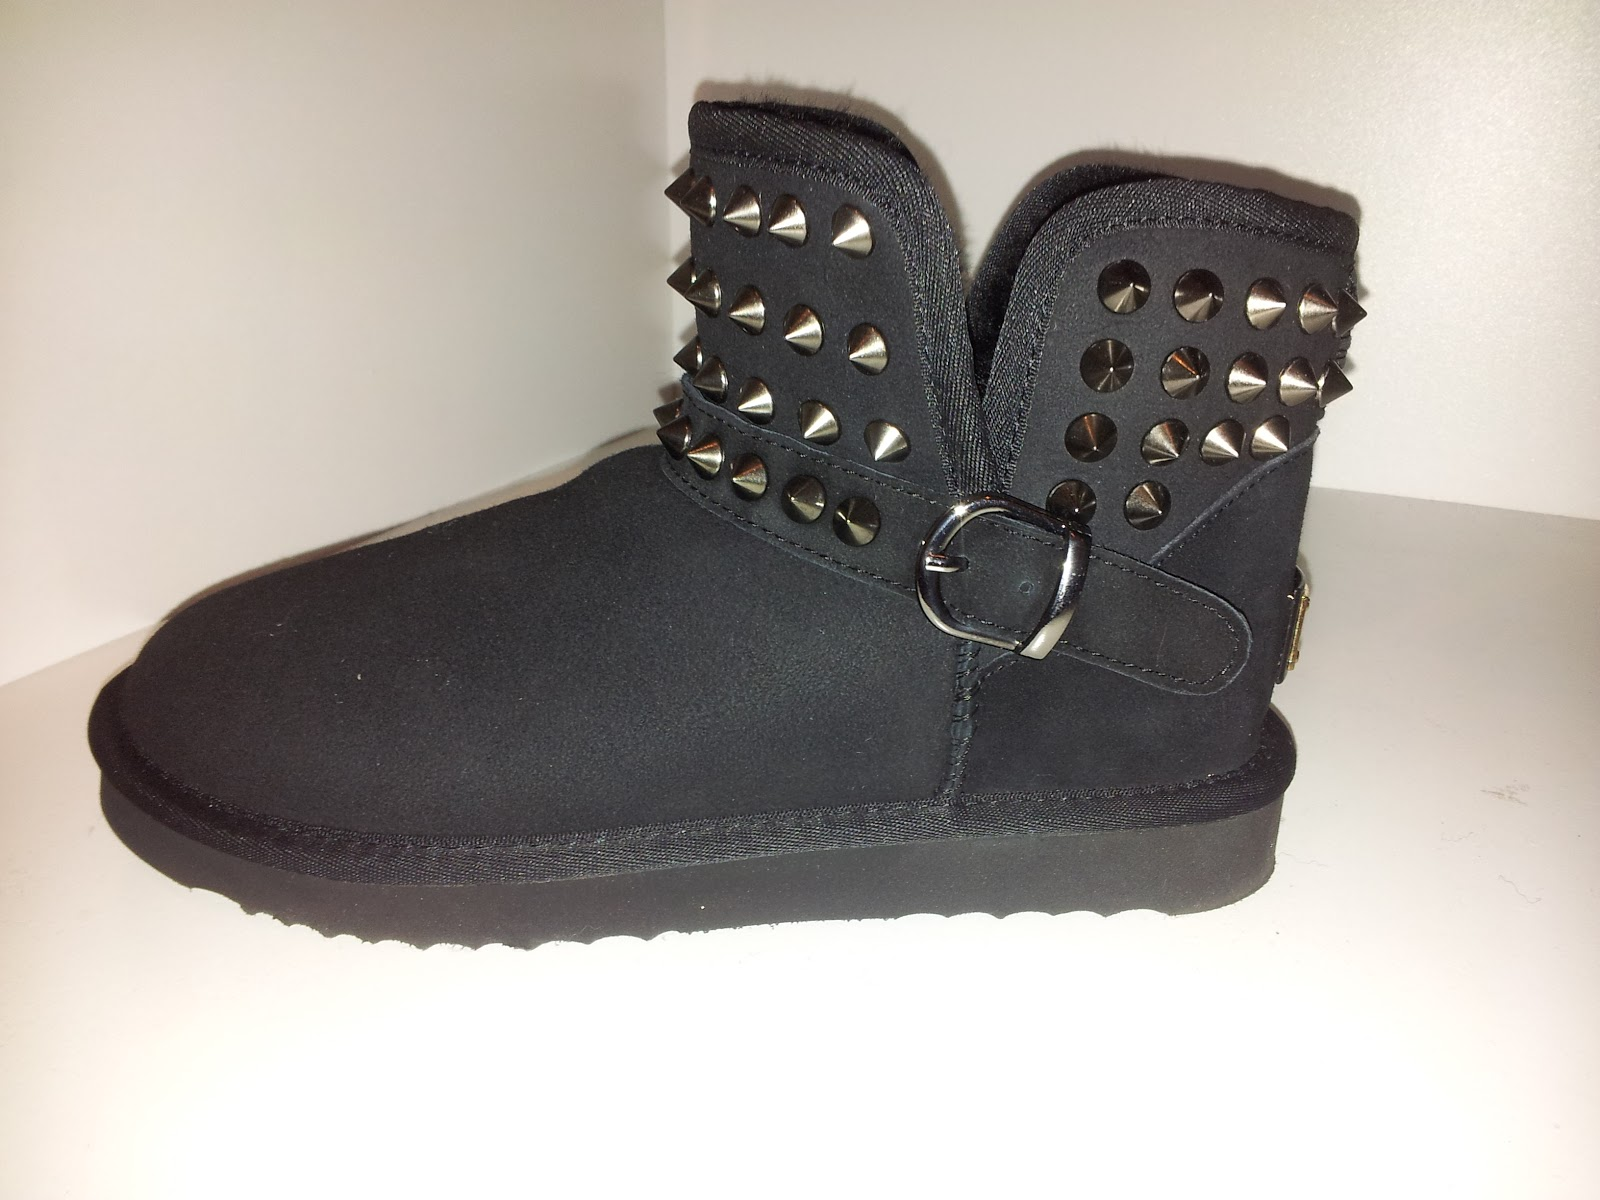 48b45d9dc68 Does Ugg Have Sales Black Friday - cheap watches mgc-gas.com